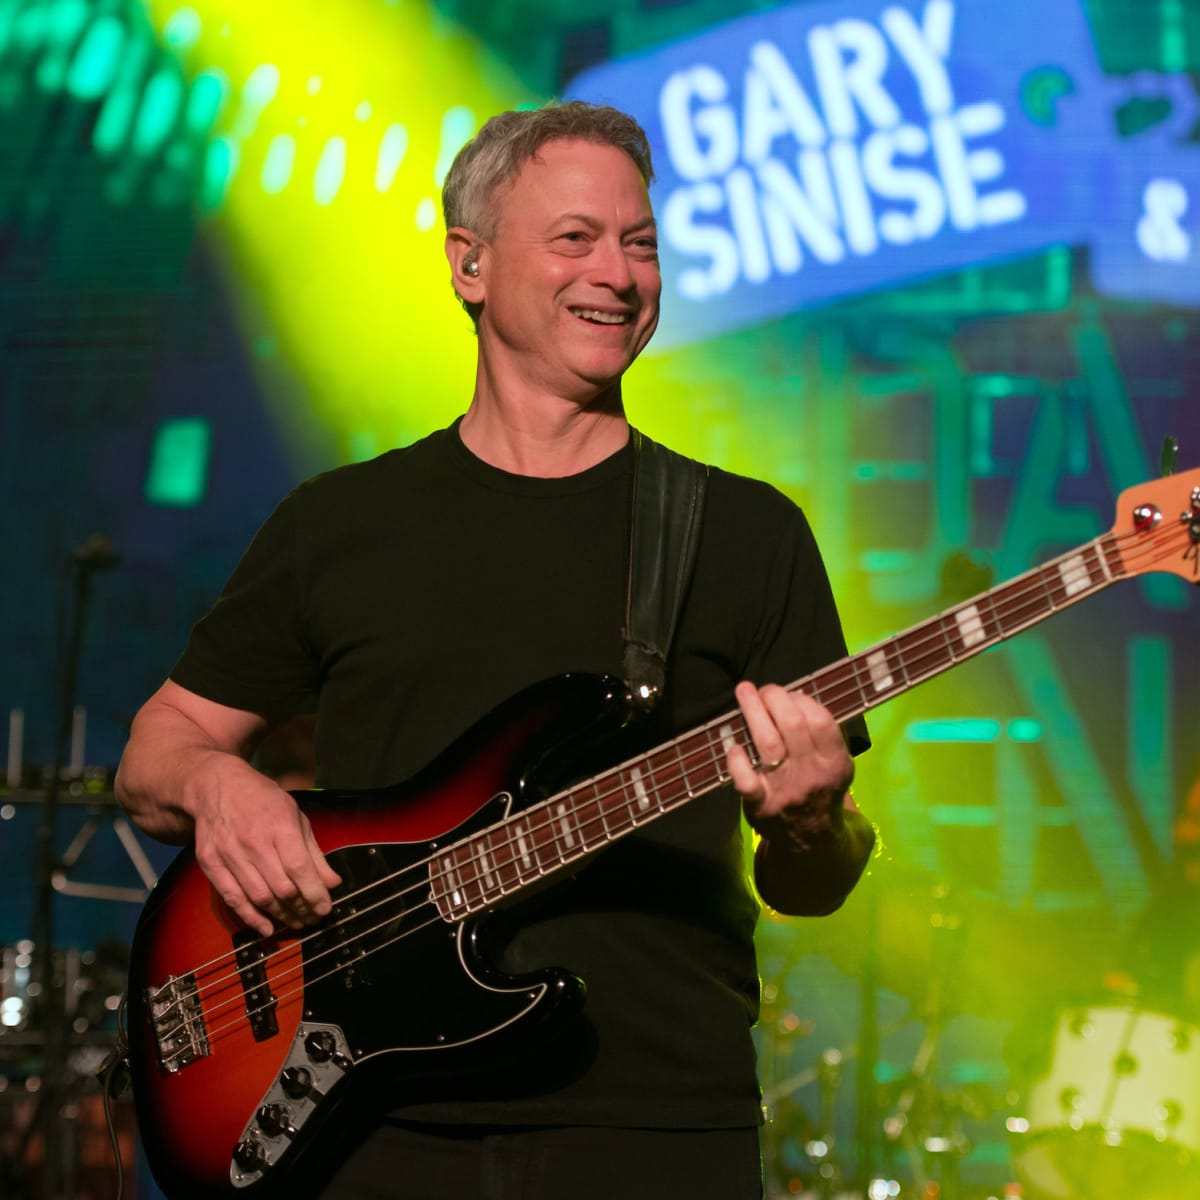 Houston, Space Center Houston Galaxy Gala, April 2017, Gary Sinise playing in the Lt. Dan Band